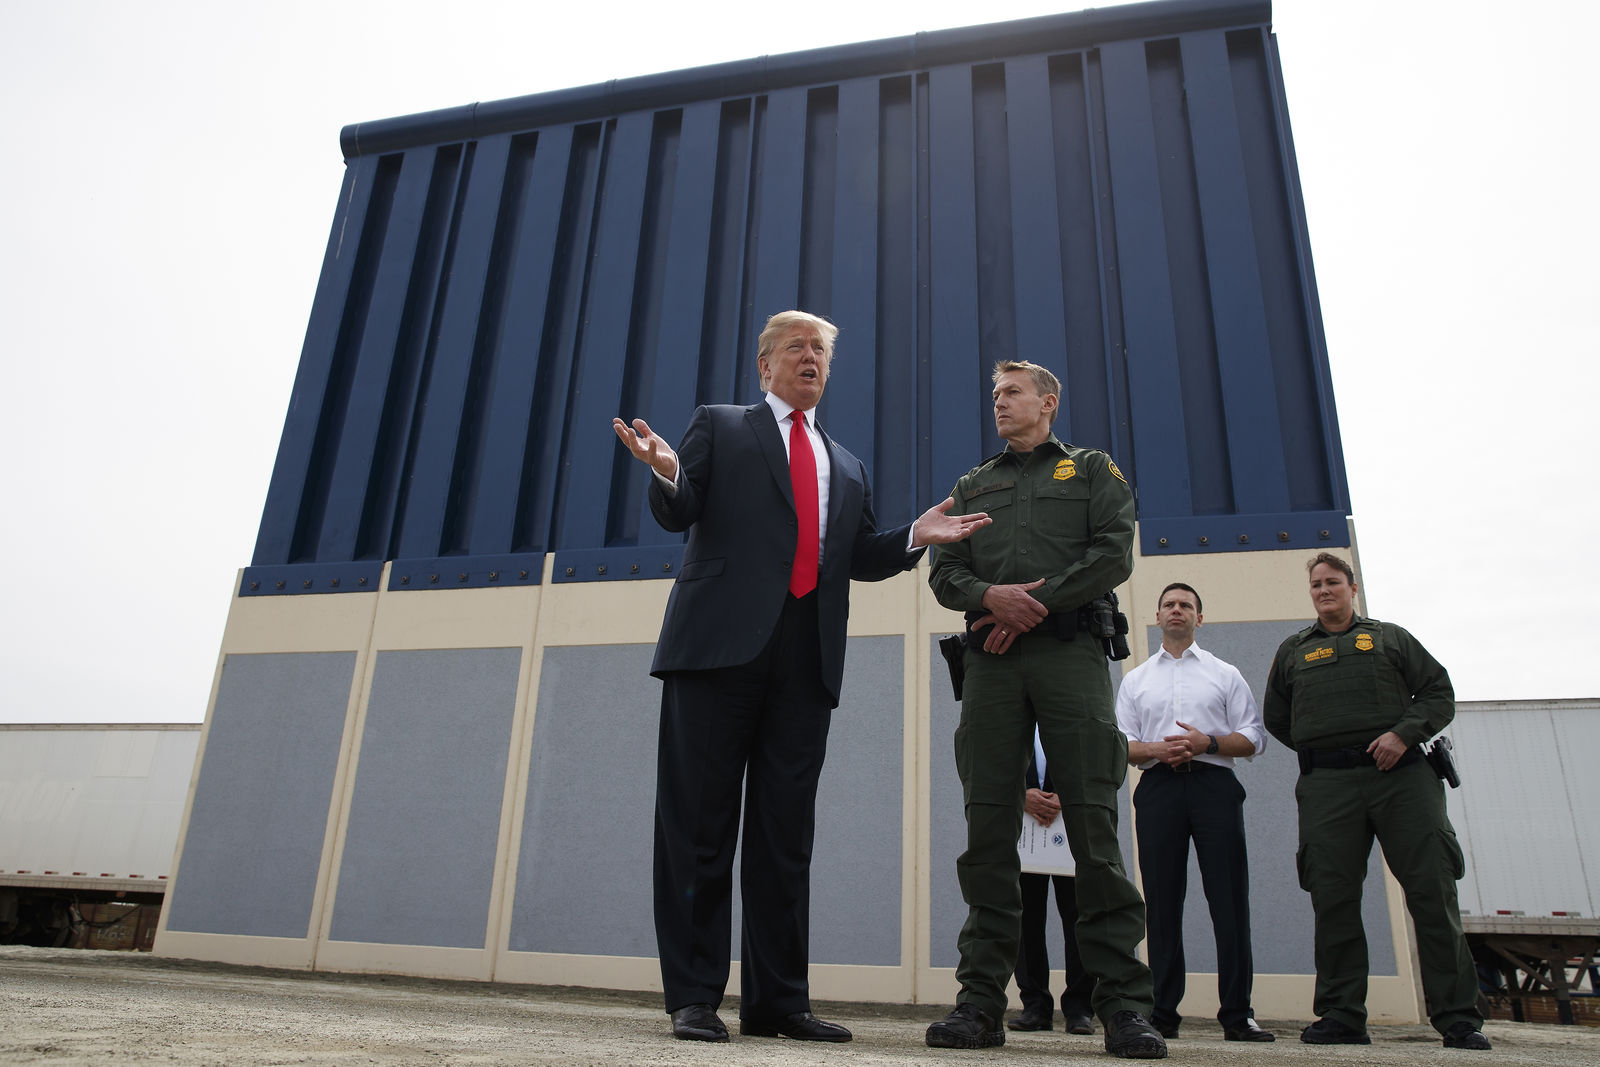 FILE - In this March 13, 2018, file photo, President Donald Trump talks with reporters as he reviews border wall prototypes in San Diego. California's attorney general filed a lawsuit Monday, Feb. 18, 2019, against Trump's emergency declaration to fund a wall on the U.S.-Mexico border. (AP Photo/Evan Vucci, File)